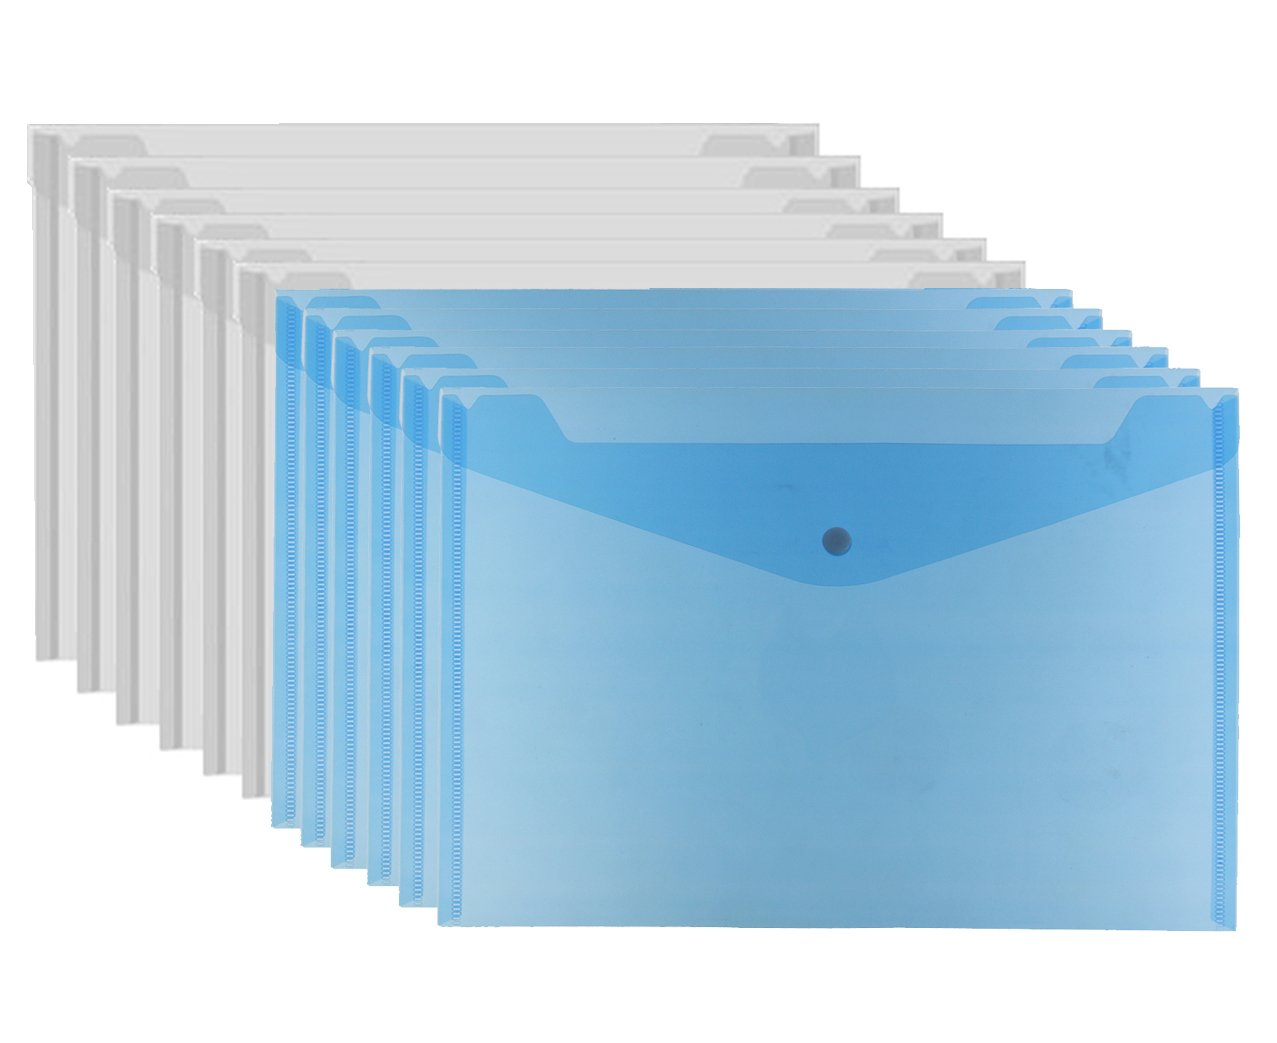 Bird Fiy Clear Document Folder with snap Button,Premium Quality Poly Envelope, A4 Size, Set of 12 in 2 Assorted Colors, Blue,White